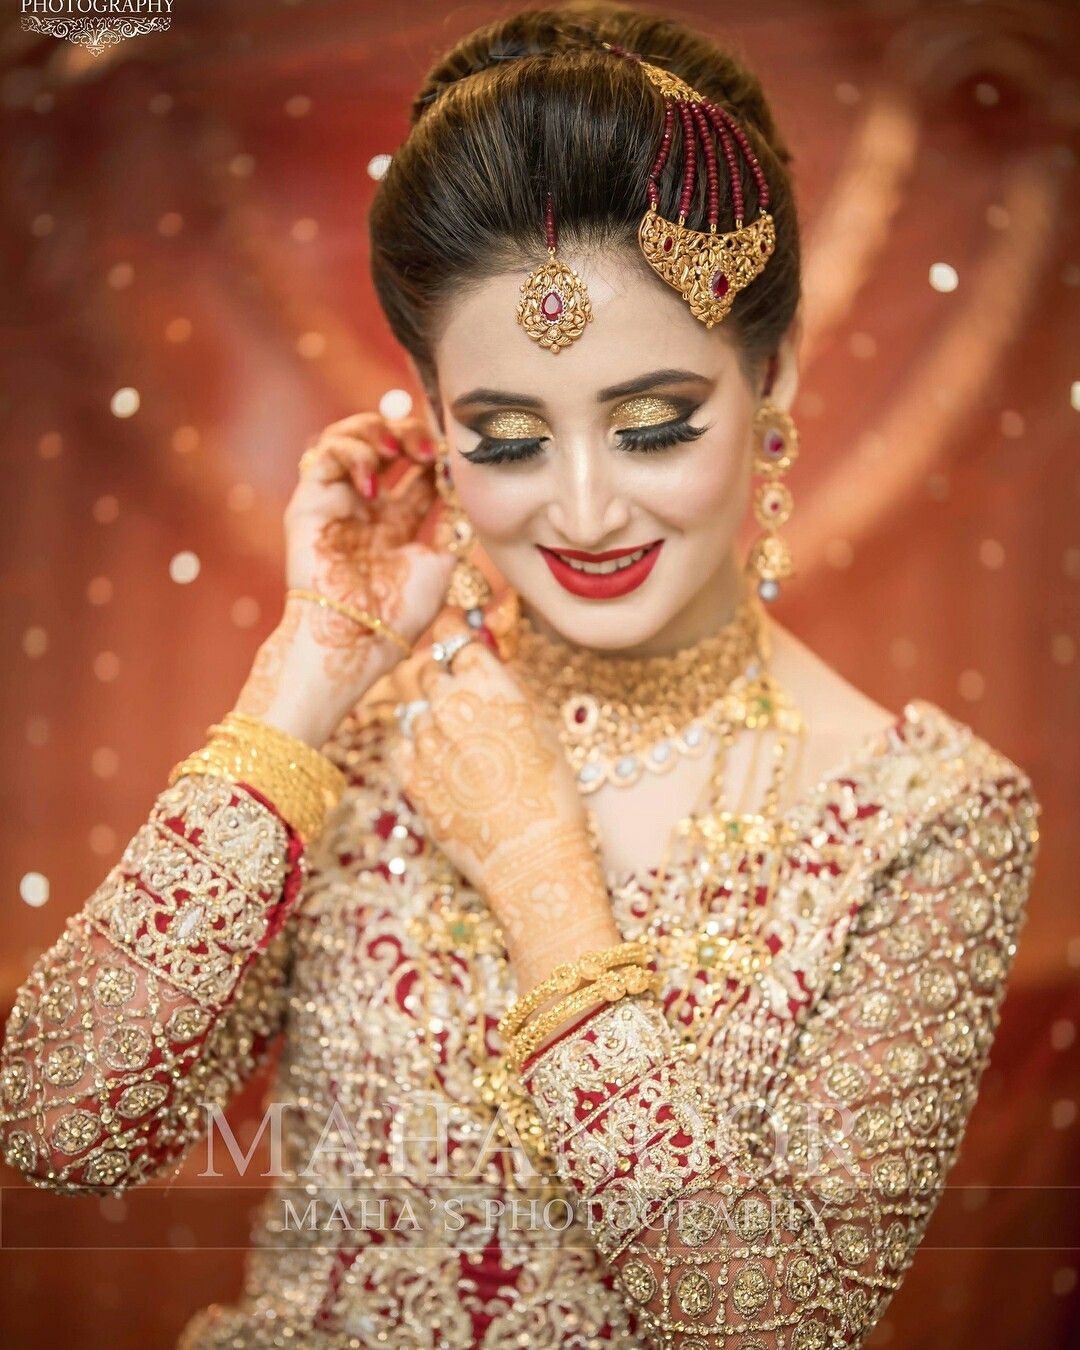 pin by neeba qulood on ~~~!!!brides!!!~~~/ in 2019